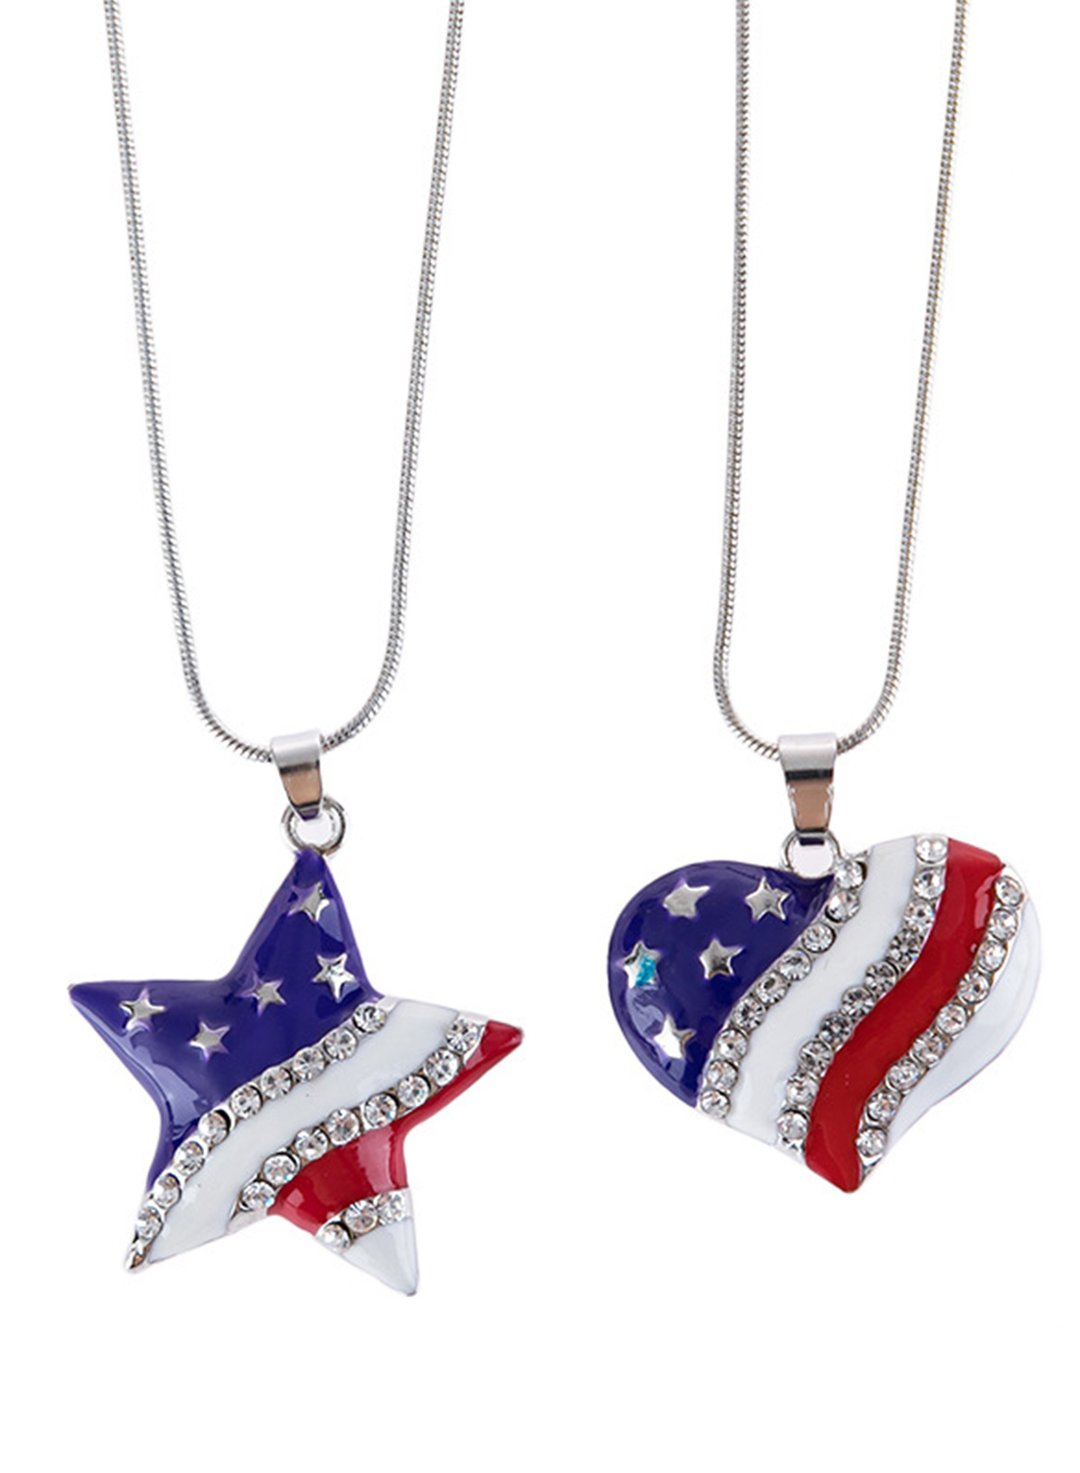 Blue Women's Necklaces Texas Independence Day Flag Stylish Casual Necklace LC011324-5